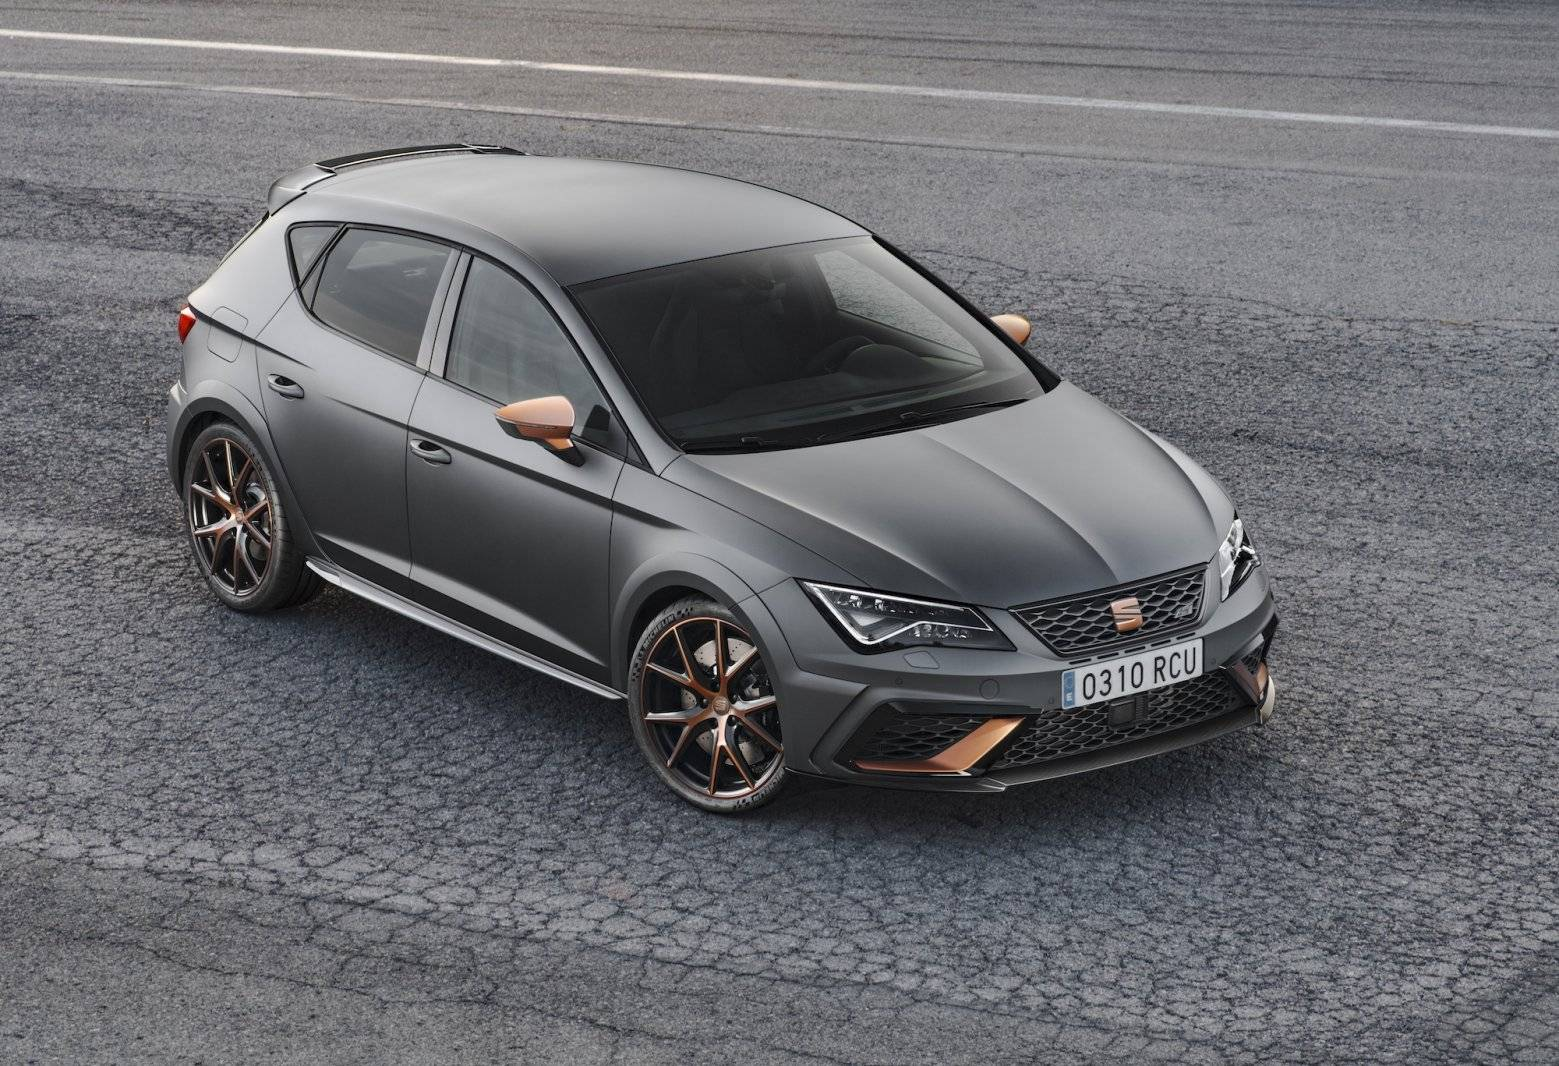 seat leon cupra r in gelimiteerde oplage autonieuws. Black Bedroom Furniture Sets. Home Design Ideas